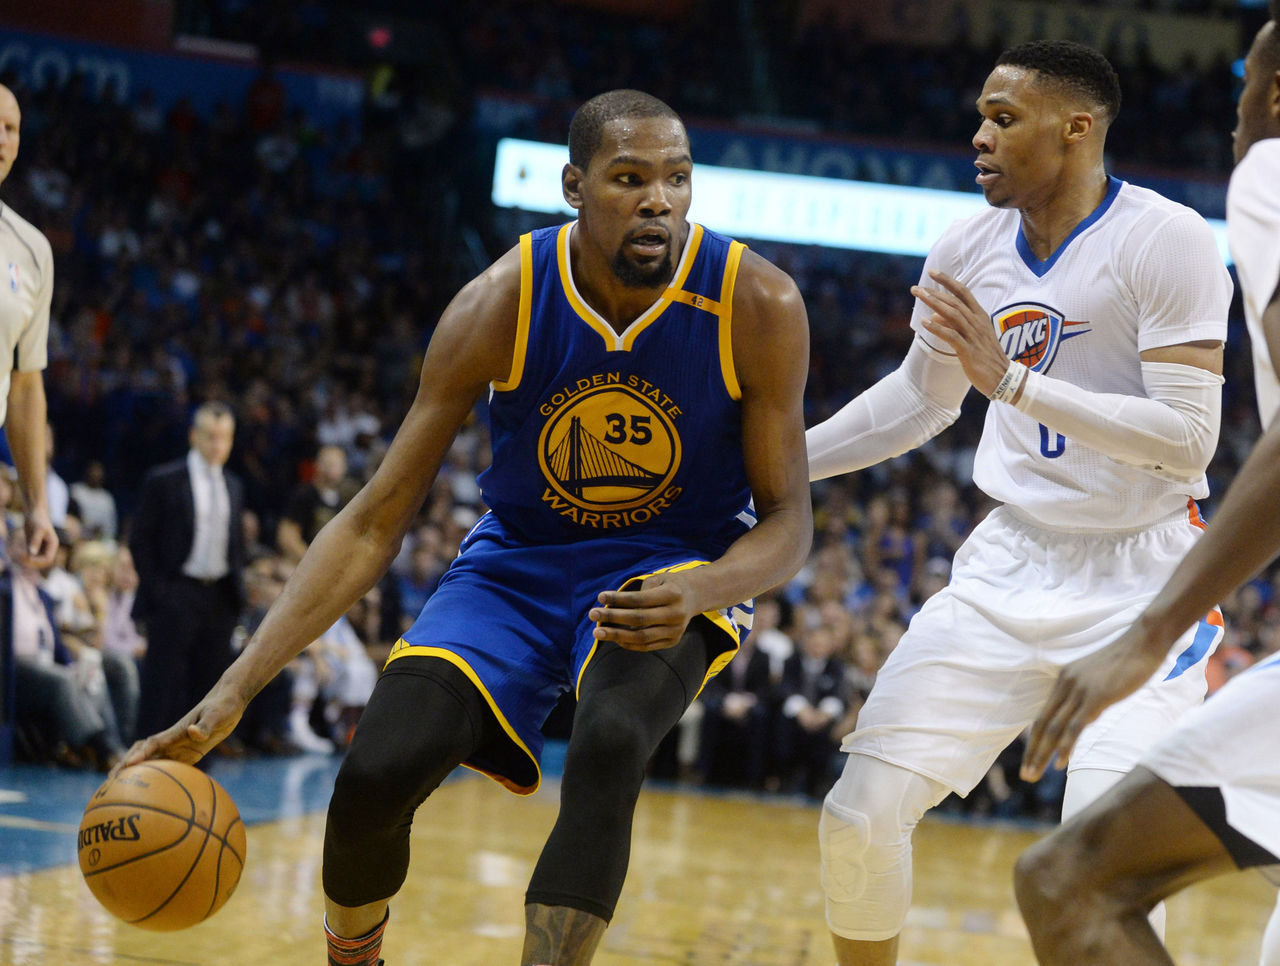 Cropped_2017-02-12t025856z_1188644296_nocid_rtrmadp_3_nba-golden-state-warriors-at-oklahoma-city-thunder